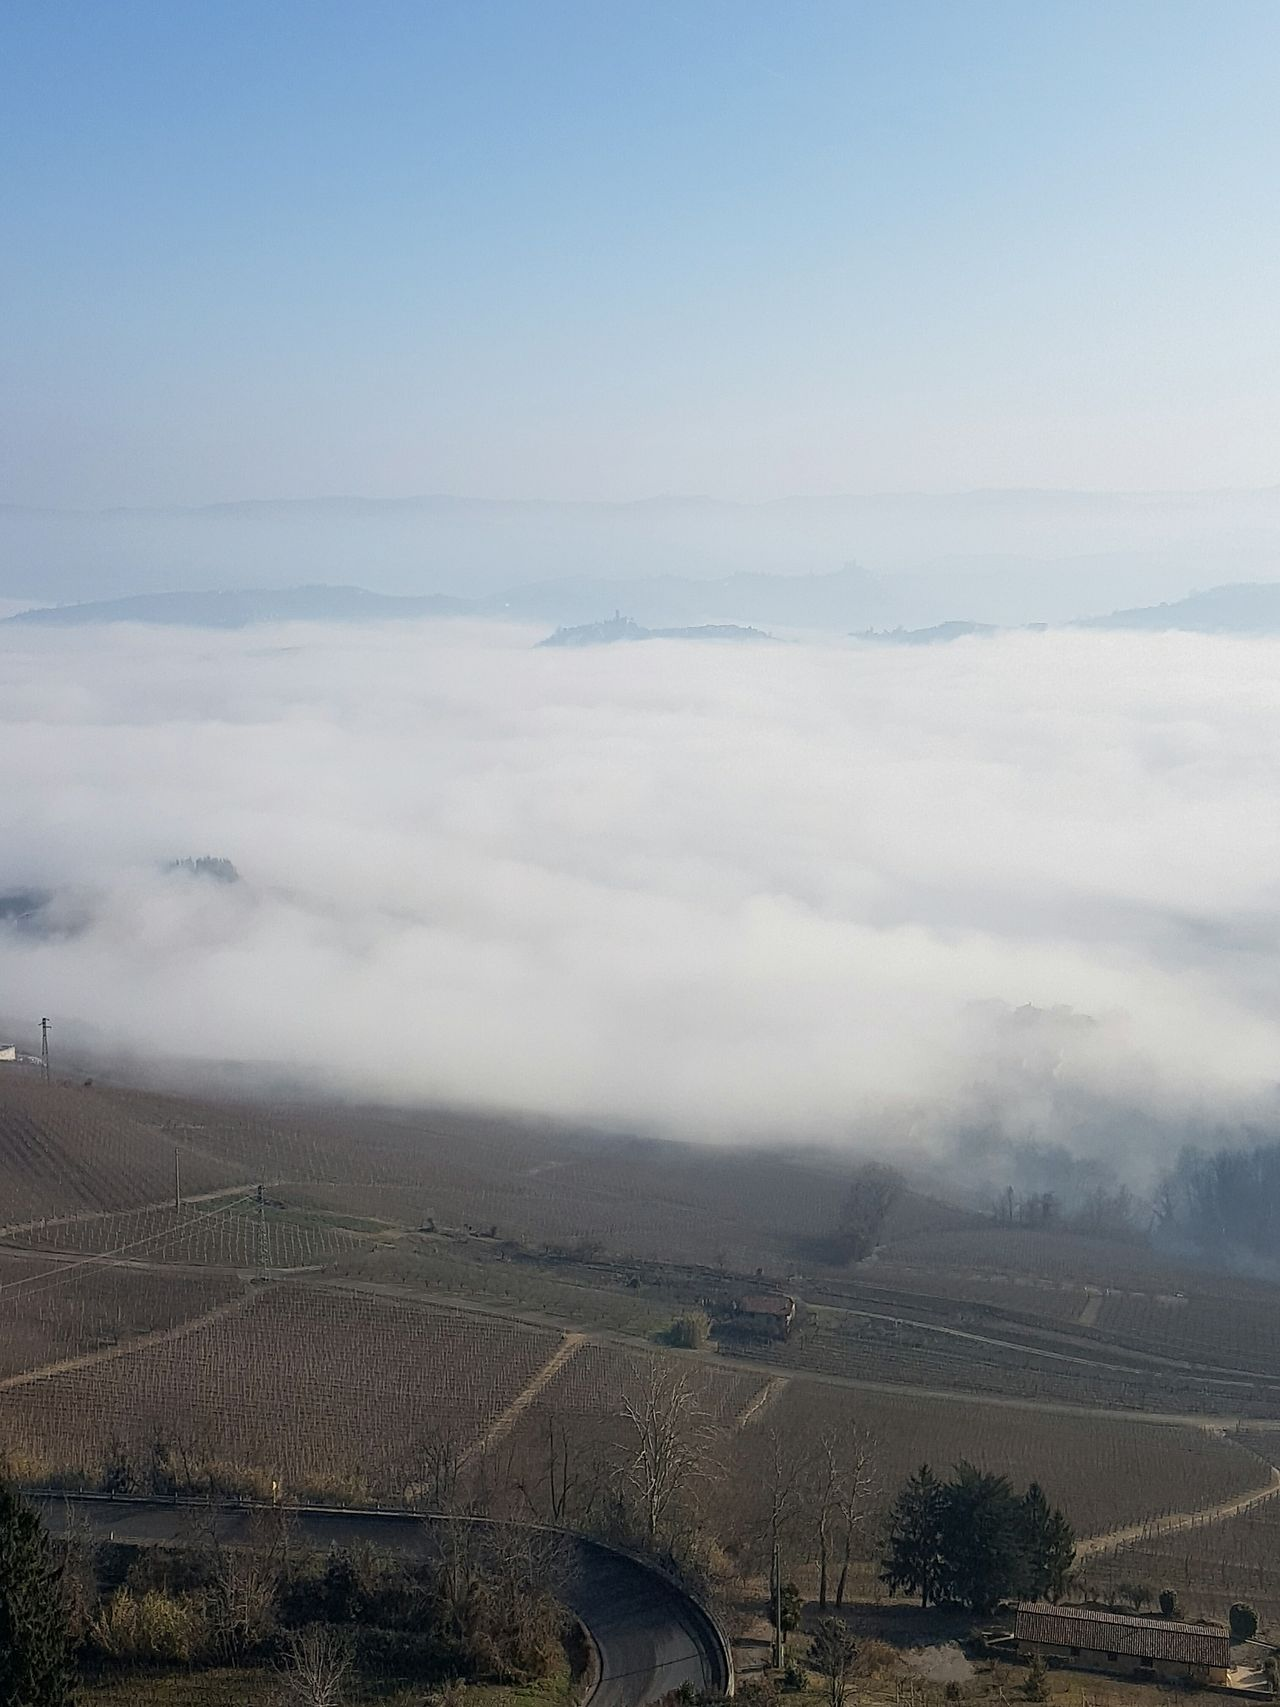 Aerial View Sky Outdoors Cloud - Sky Landscape No People Scenics Nature Day Atmospheric Mood Autumn La Morra Langhe Piedmont Trees In The Fog Foggy Weather Foggy Day Tranquility Nature Beauty In Nature Flying Fog Texture And Surfaces Agriculture Travel Destinations EyeEmNewHere Miles Away